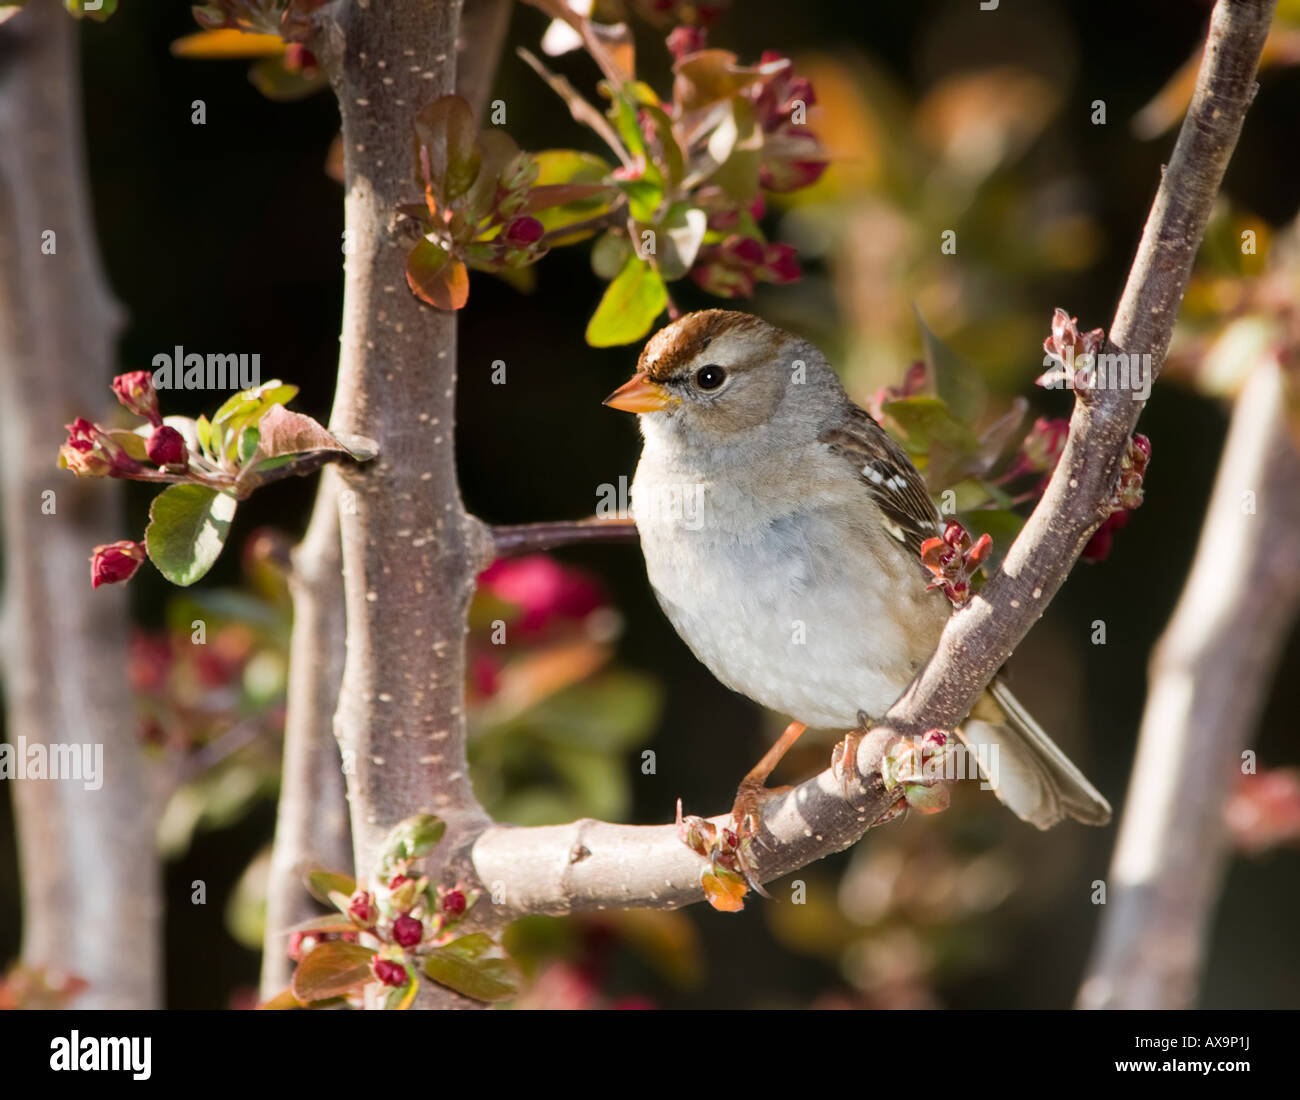 Chipping Sparrow, Spizella passerina, perched in a budding Crabapple tree, Malus. Oklahoma, USA. - Stock Image